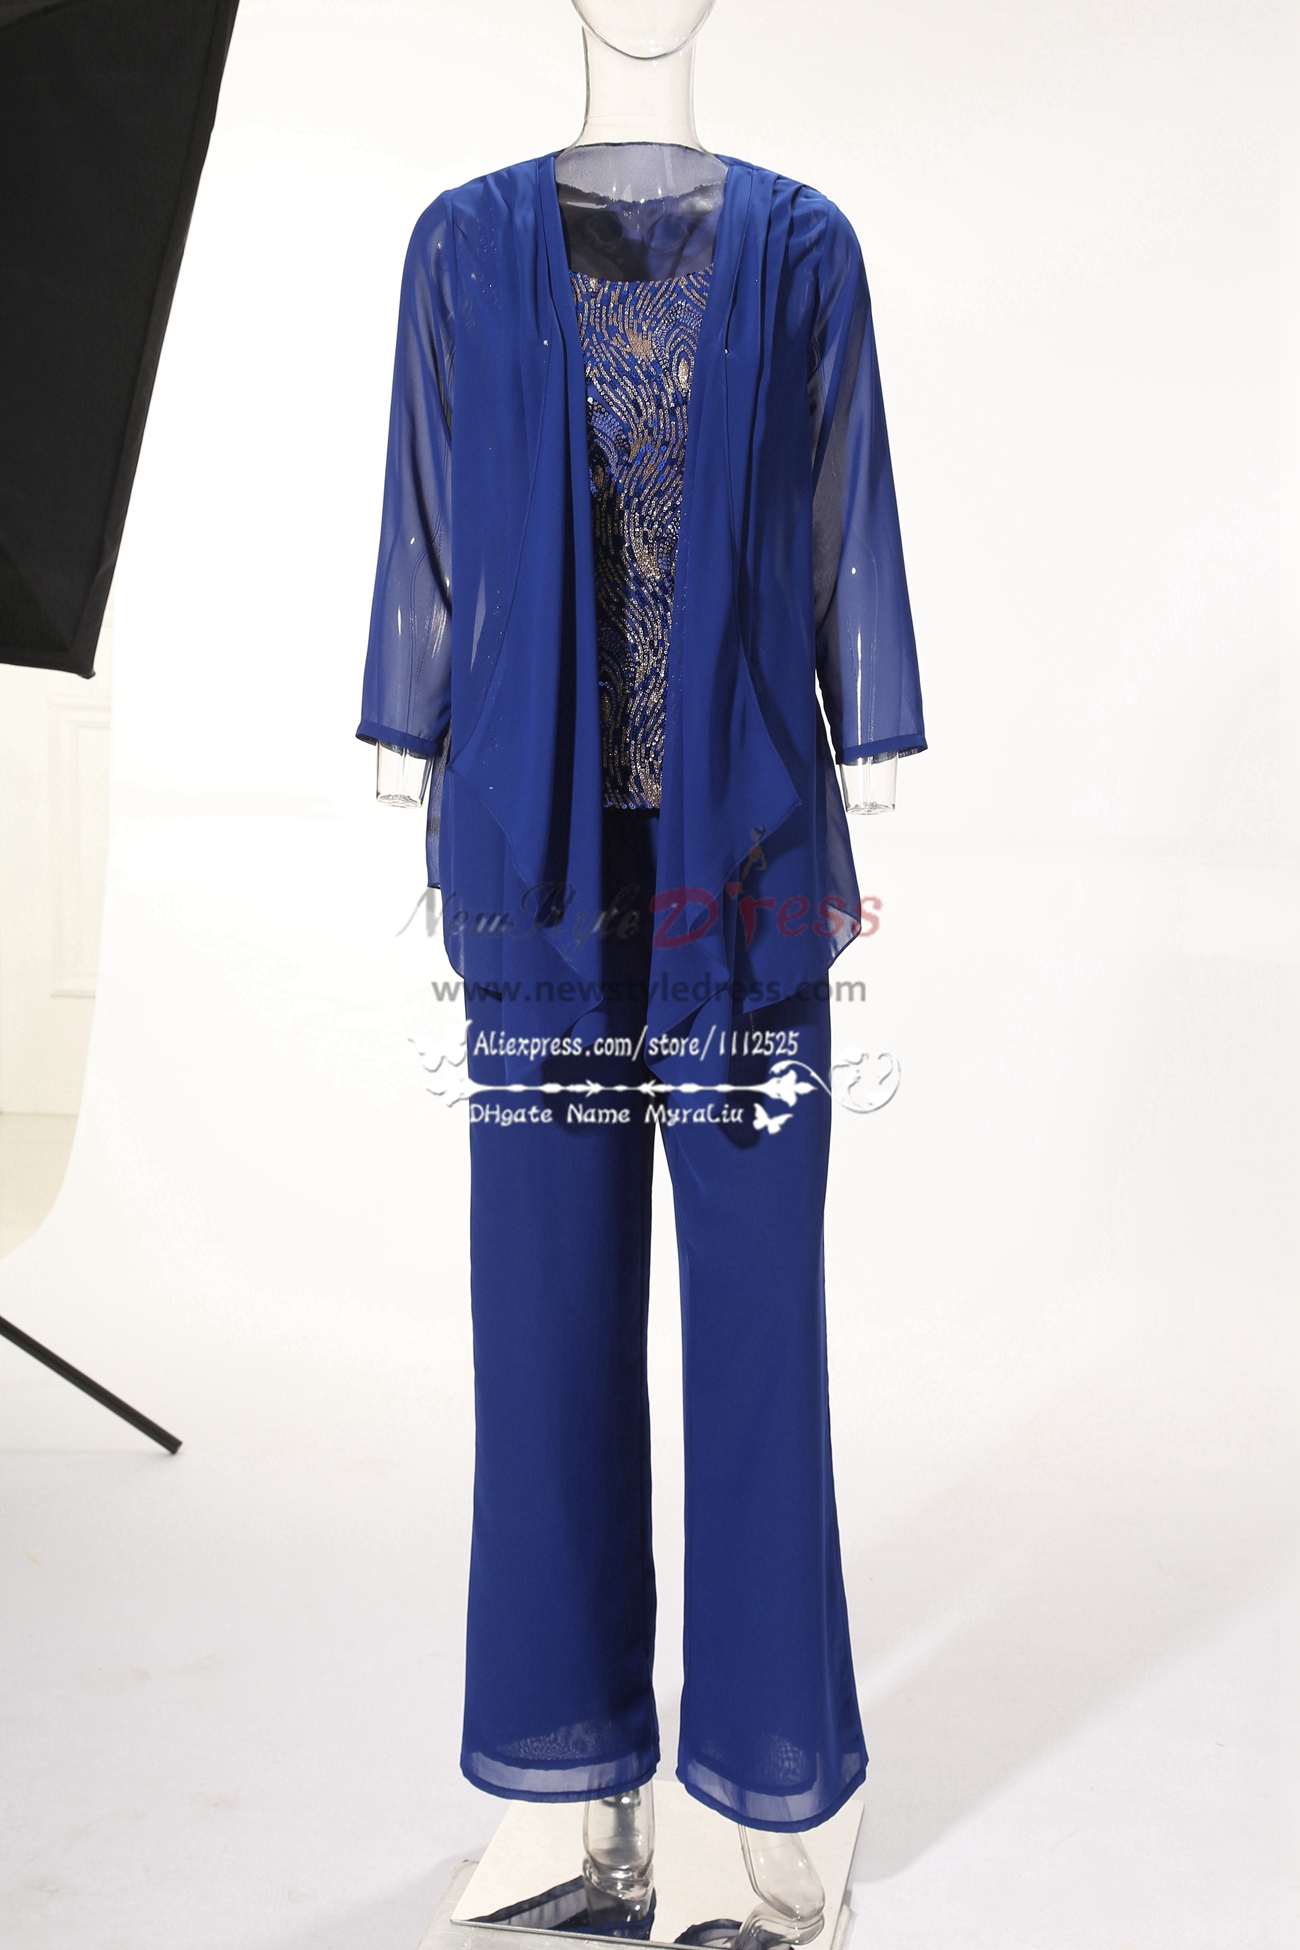 Champagne Simple Chiffon mother of the bride pant suits nmo $ $ You save: $ 13 Review(s) New arrival Dark Navy Chiffon Comfortable Mother of the Bride Dresses pant suit for wedding party. $ $ You save: $ Royal blue Mother of the bride dresses with shawl Chiffon outfit for beach.